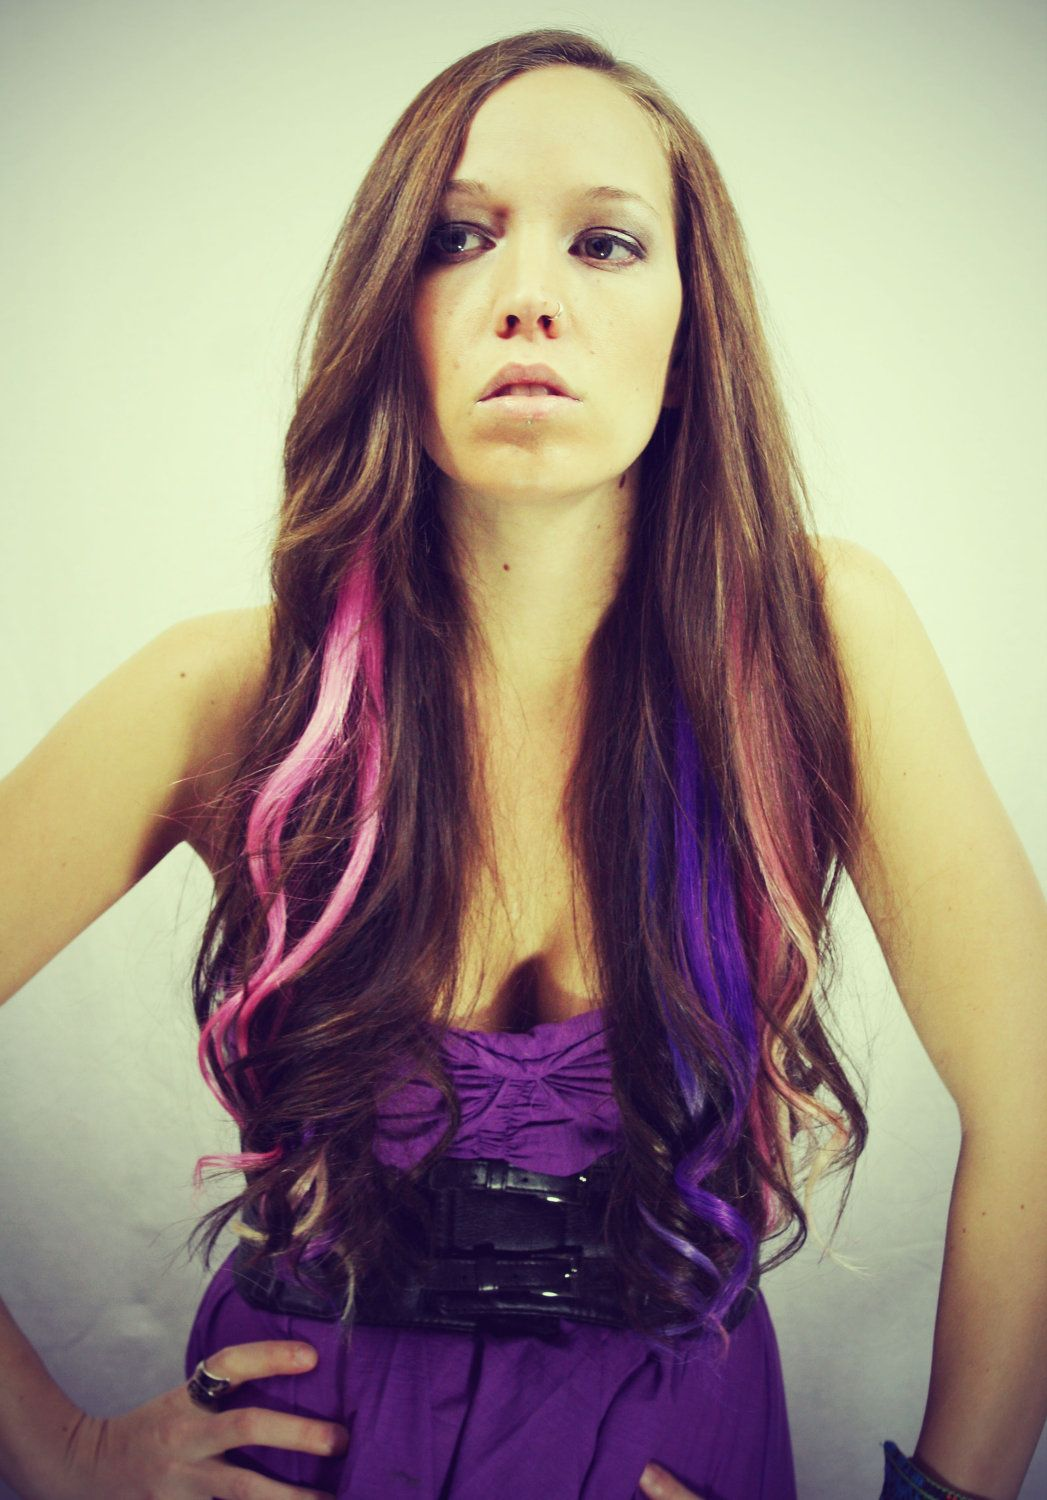 Okay So I Know This Is Unusual But When I Saw The Tie Dyed Hair